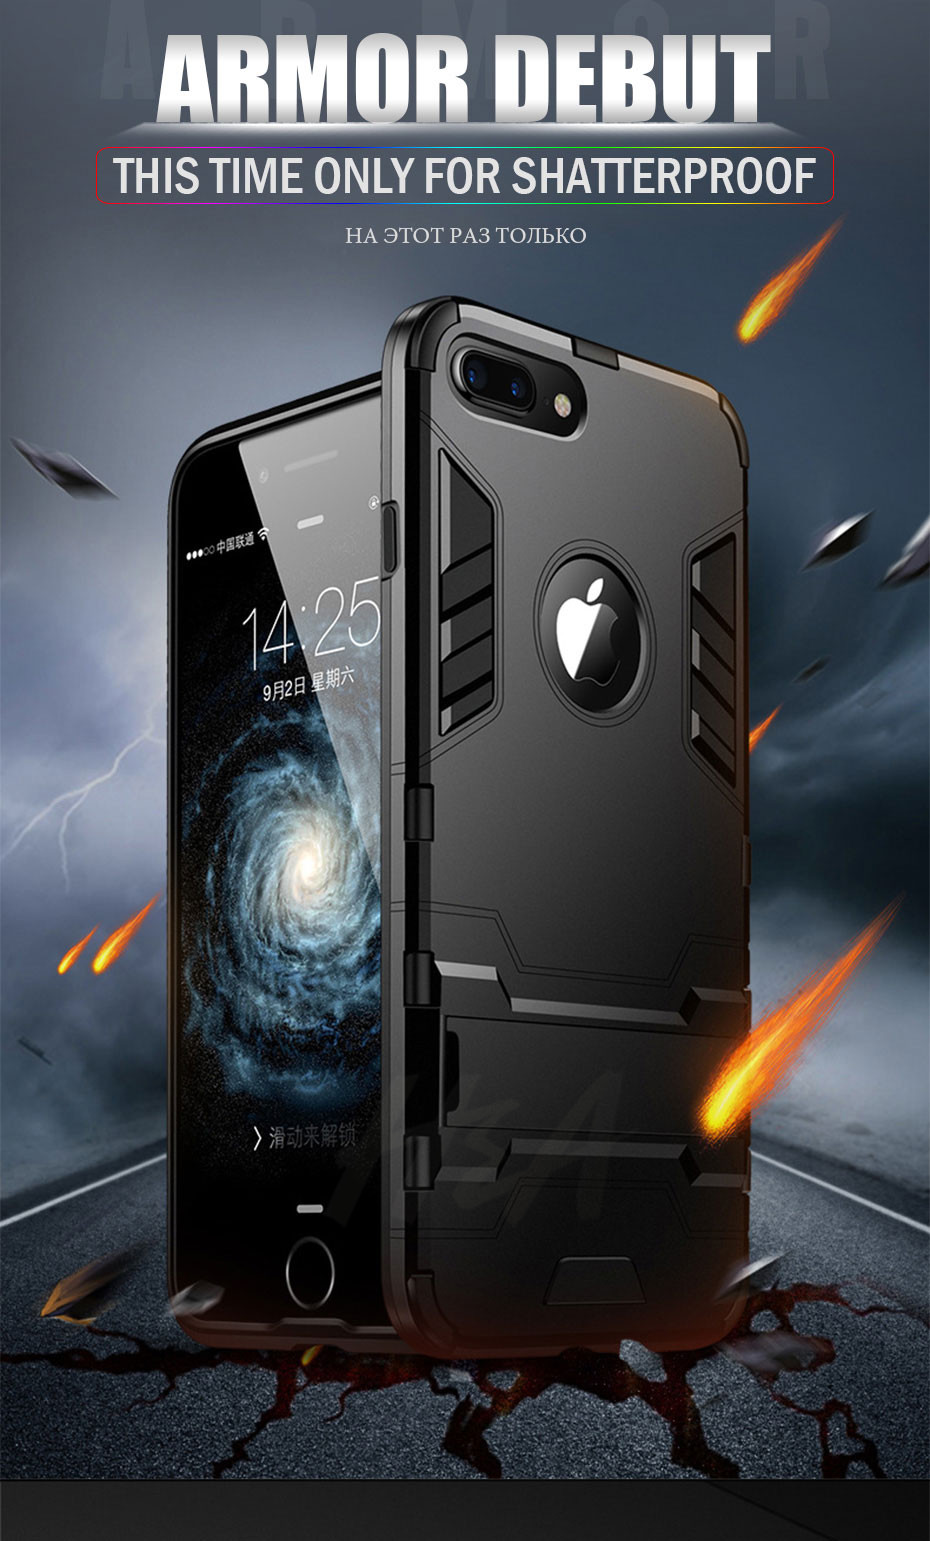 360 Full Shockproof Phone Iphone X 6 8 7 Plus Armor Protective Iphone 7 8 Plus 5 5S SE Holder Cover Shell